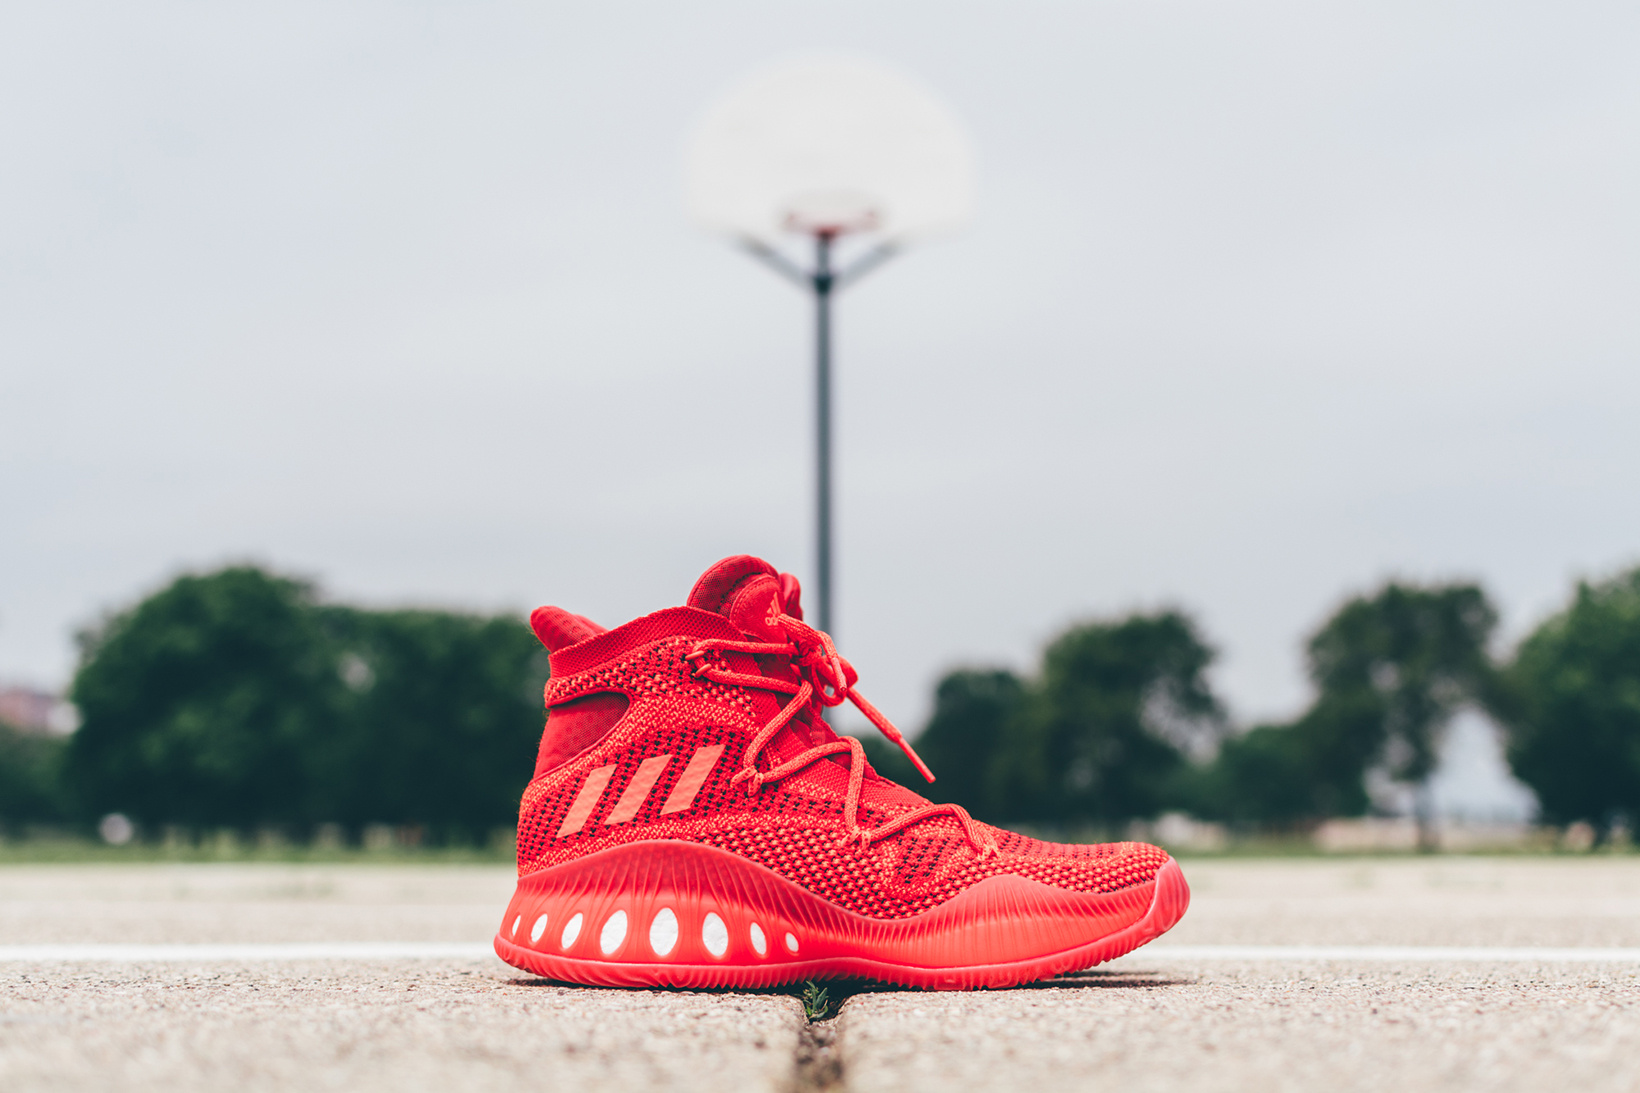 100032d17257 New adidas Crazy Explosive Silhouette  SneakPeak  adidas new crazy  explosive silhouette 1